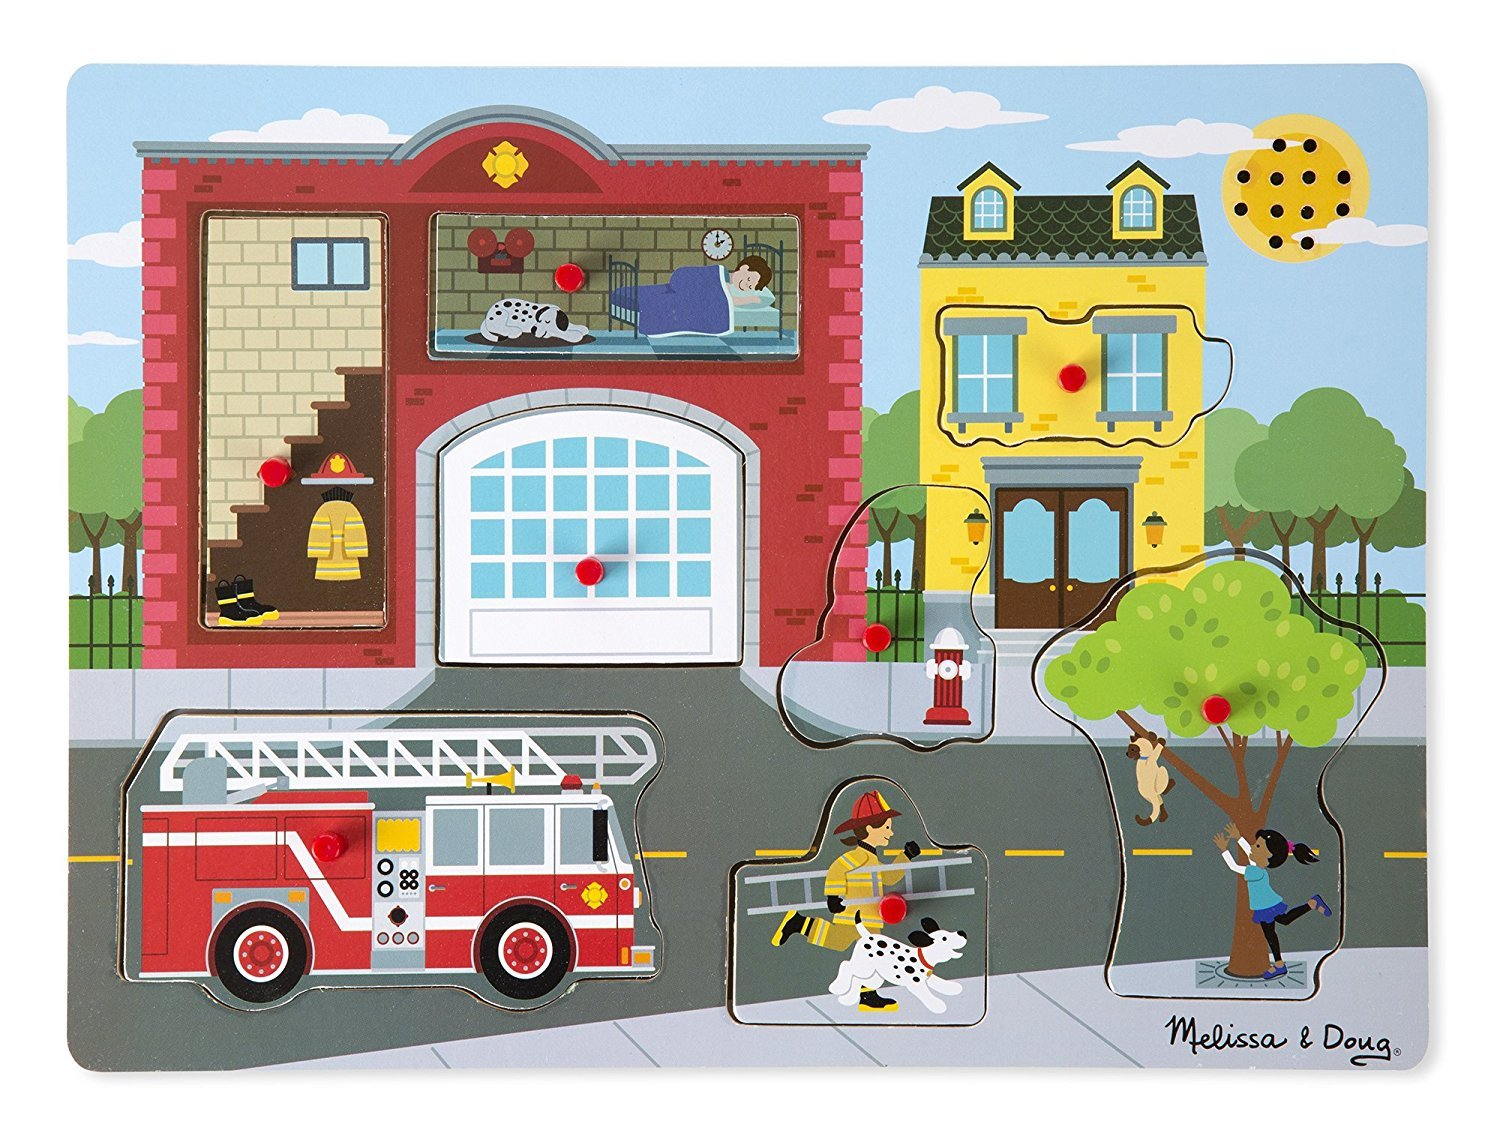 Melissa & Doug: Around the Fire Station - Sound Puzzle image